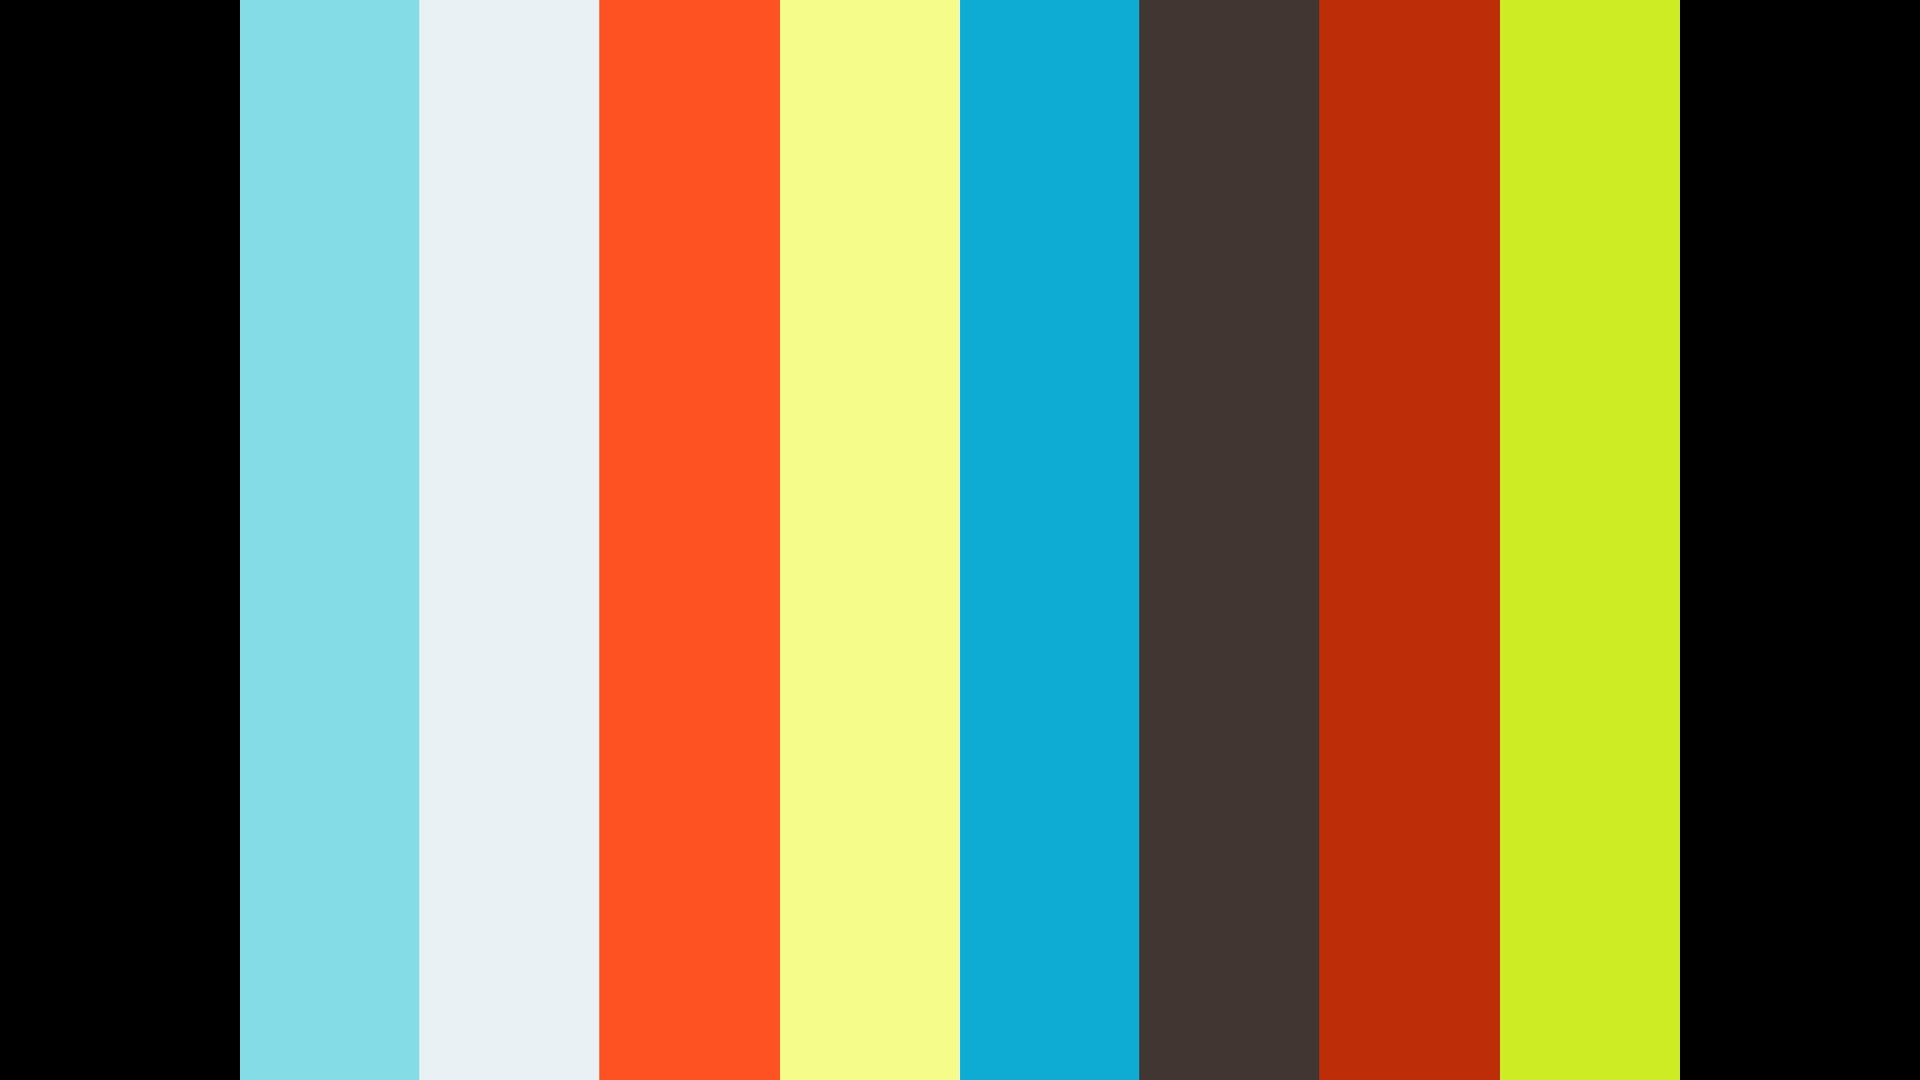 Pam Santoro, Realtor of Berkshire Hathaway gives TC Productions a Testimonial